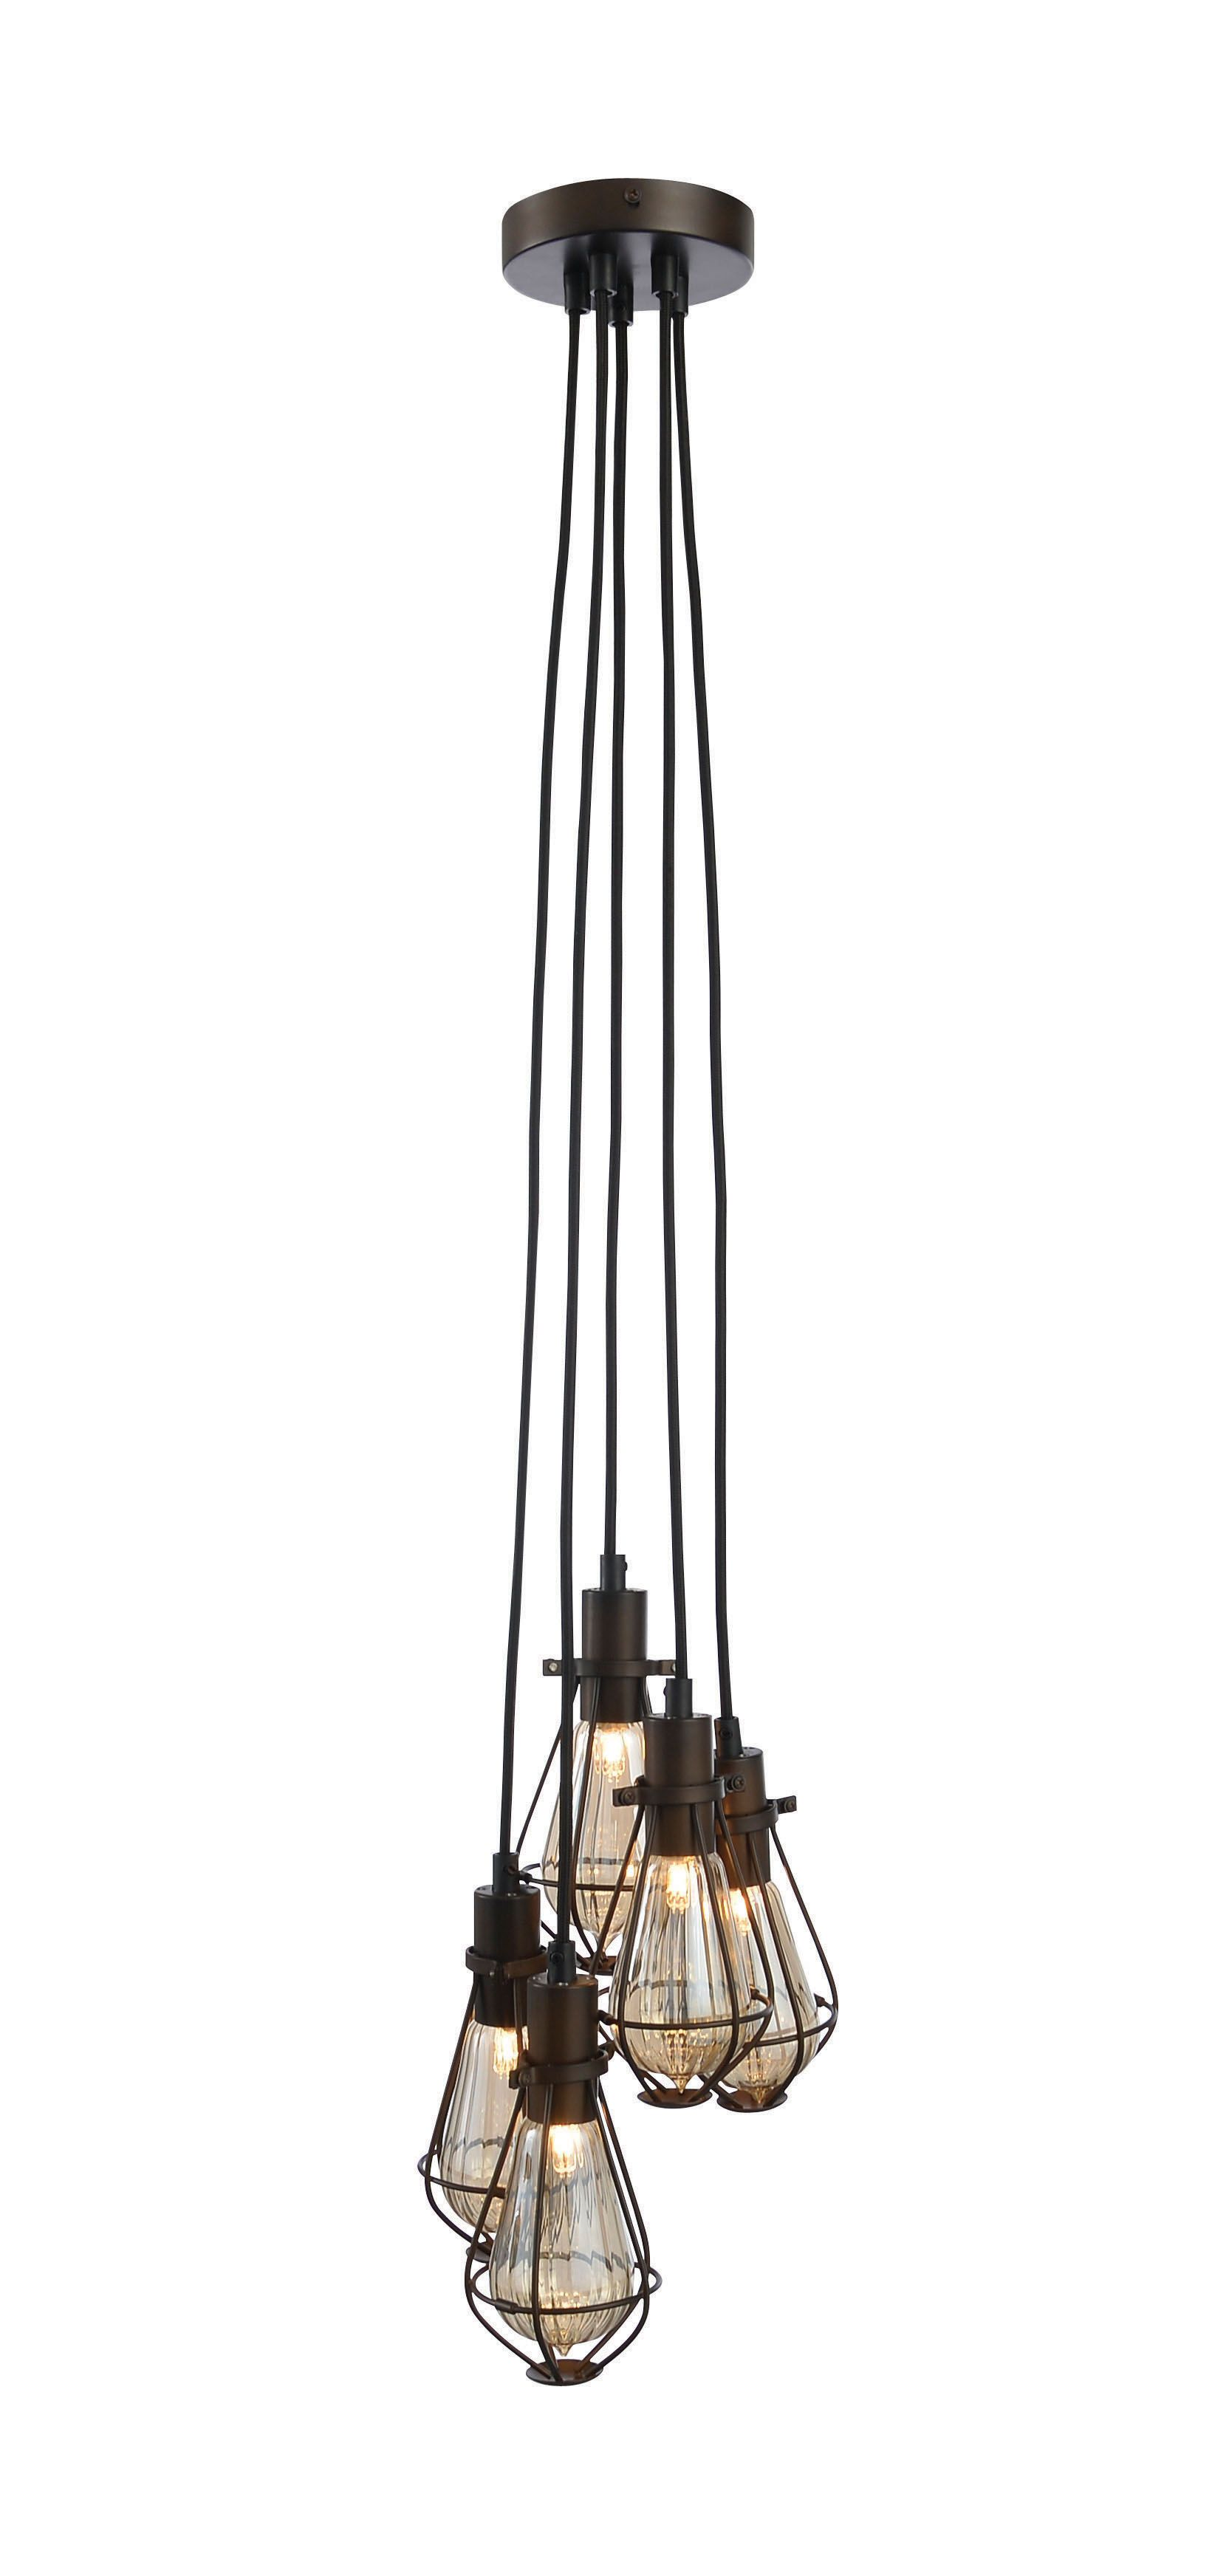 all bhs pendants light lights pendant p ceilings hol black ceiling lighting